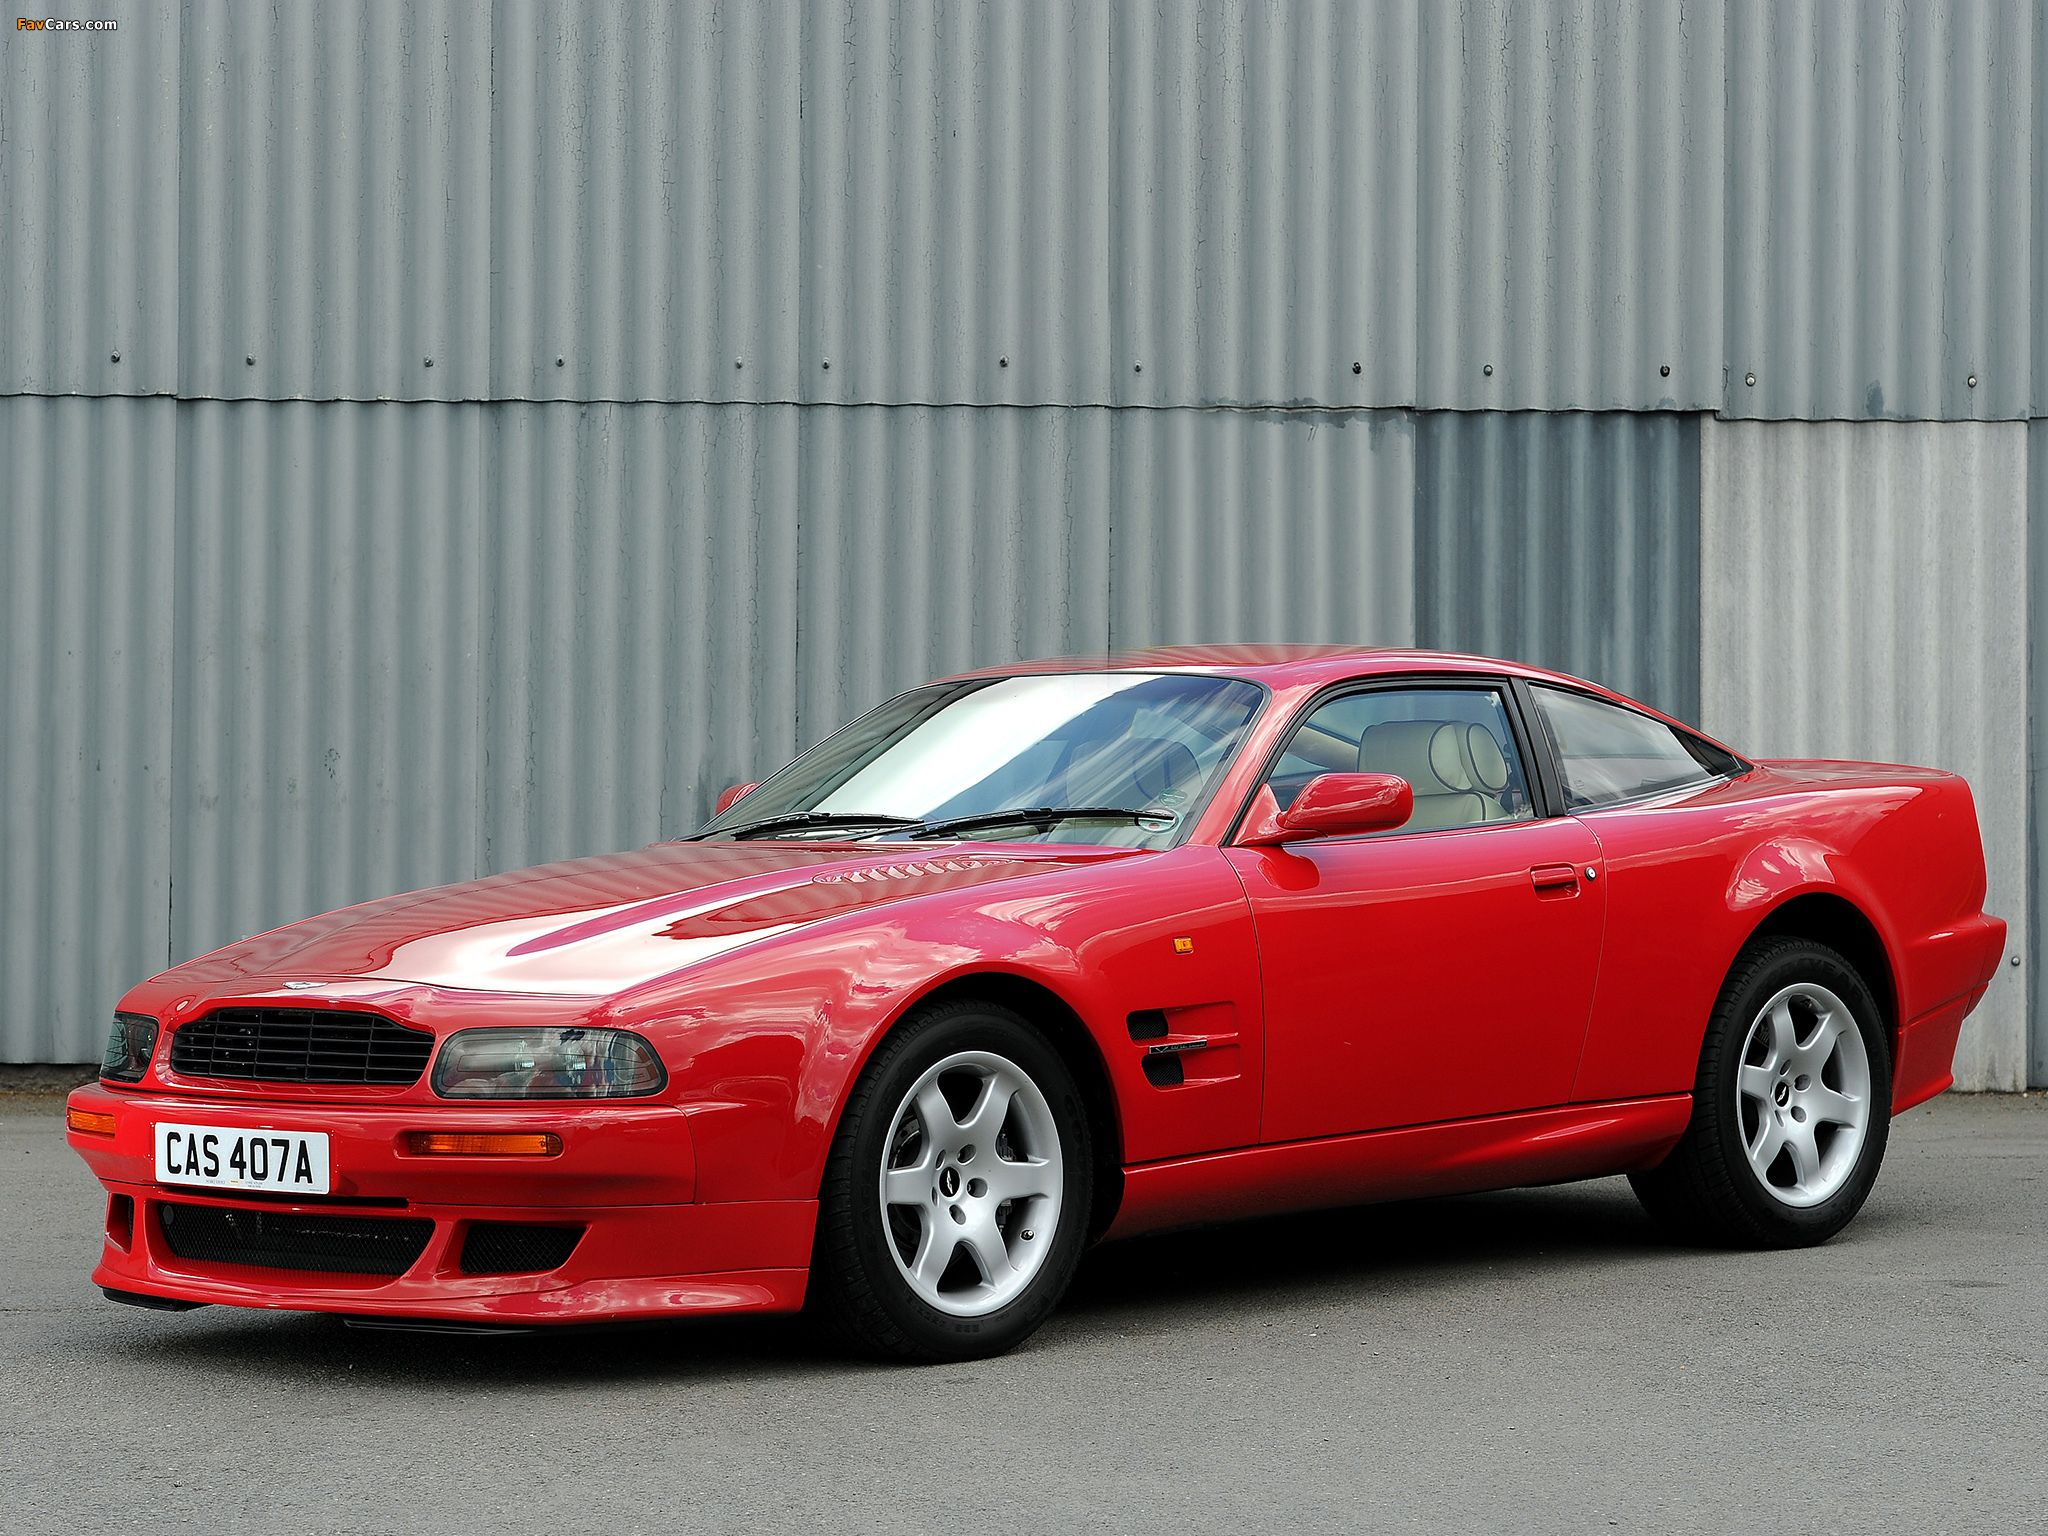 Between 1993 and 2000, 'Vantage' was once again used to indicate a high-performance version, this time of the Virage, later known as V8 Coupe.